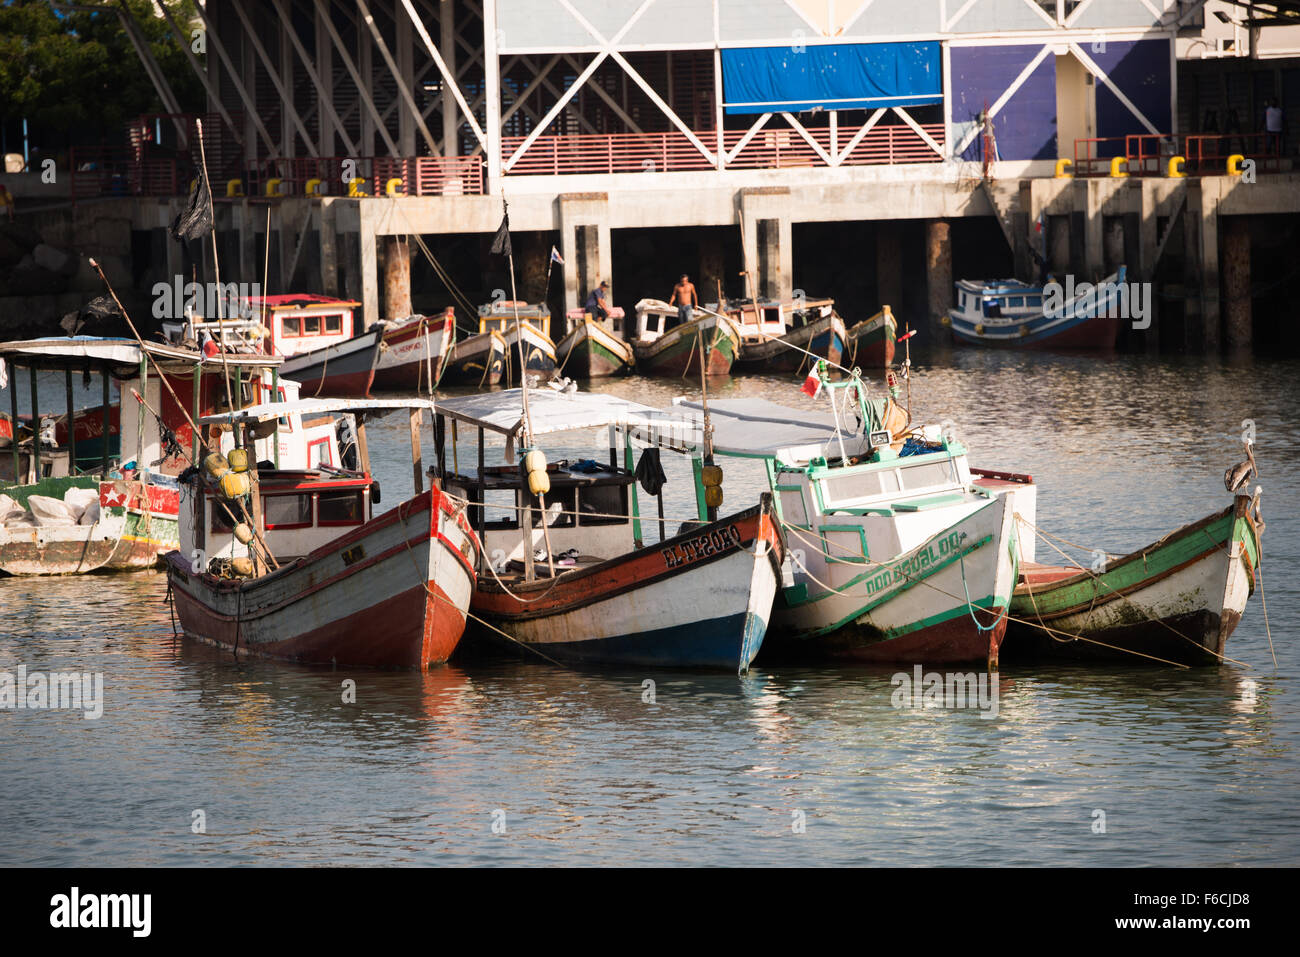 PANAMA CITY, Panama--Small wooden fishing boats on the waterfront of Panama City, Panama, on Panama Bay. Stock Photo